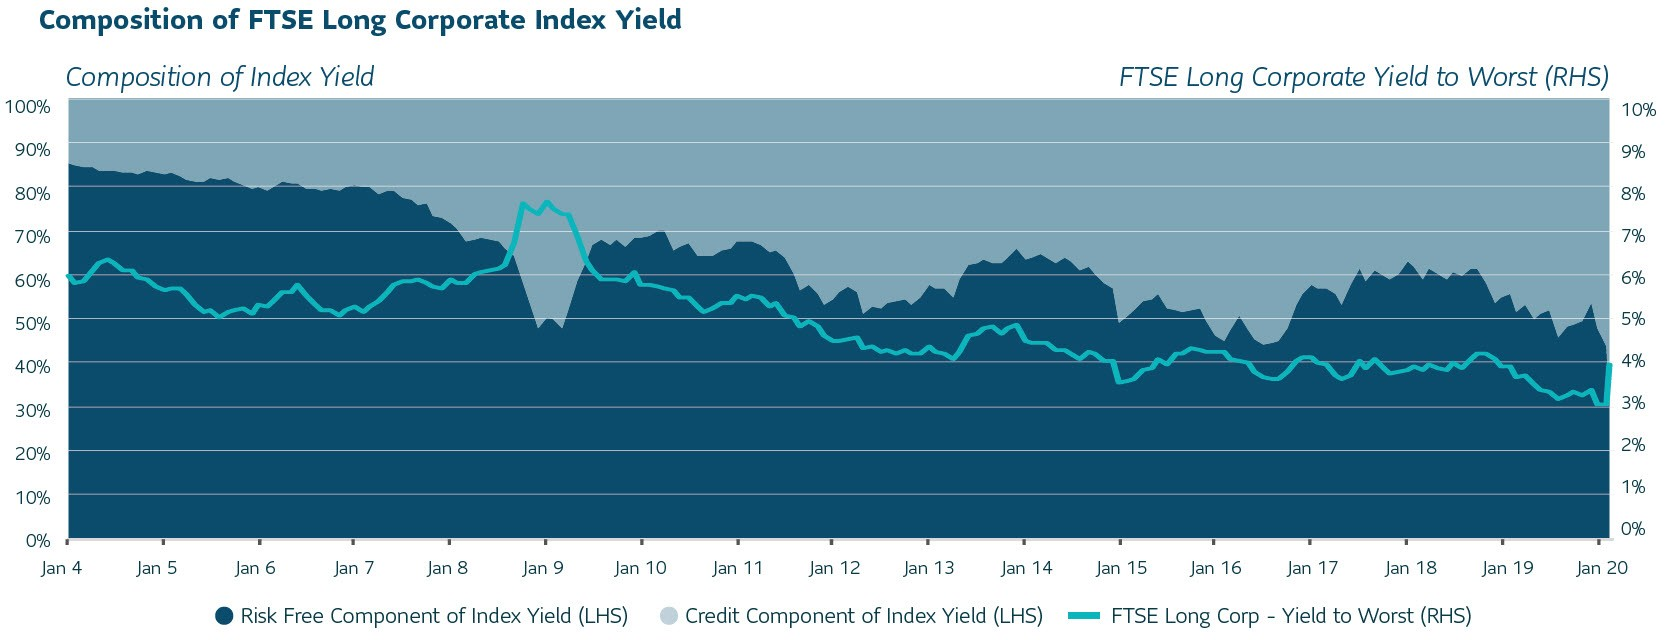 Composition of FTSE Long Corporate Index Yield